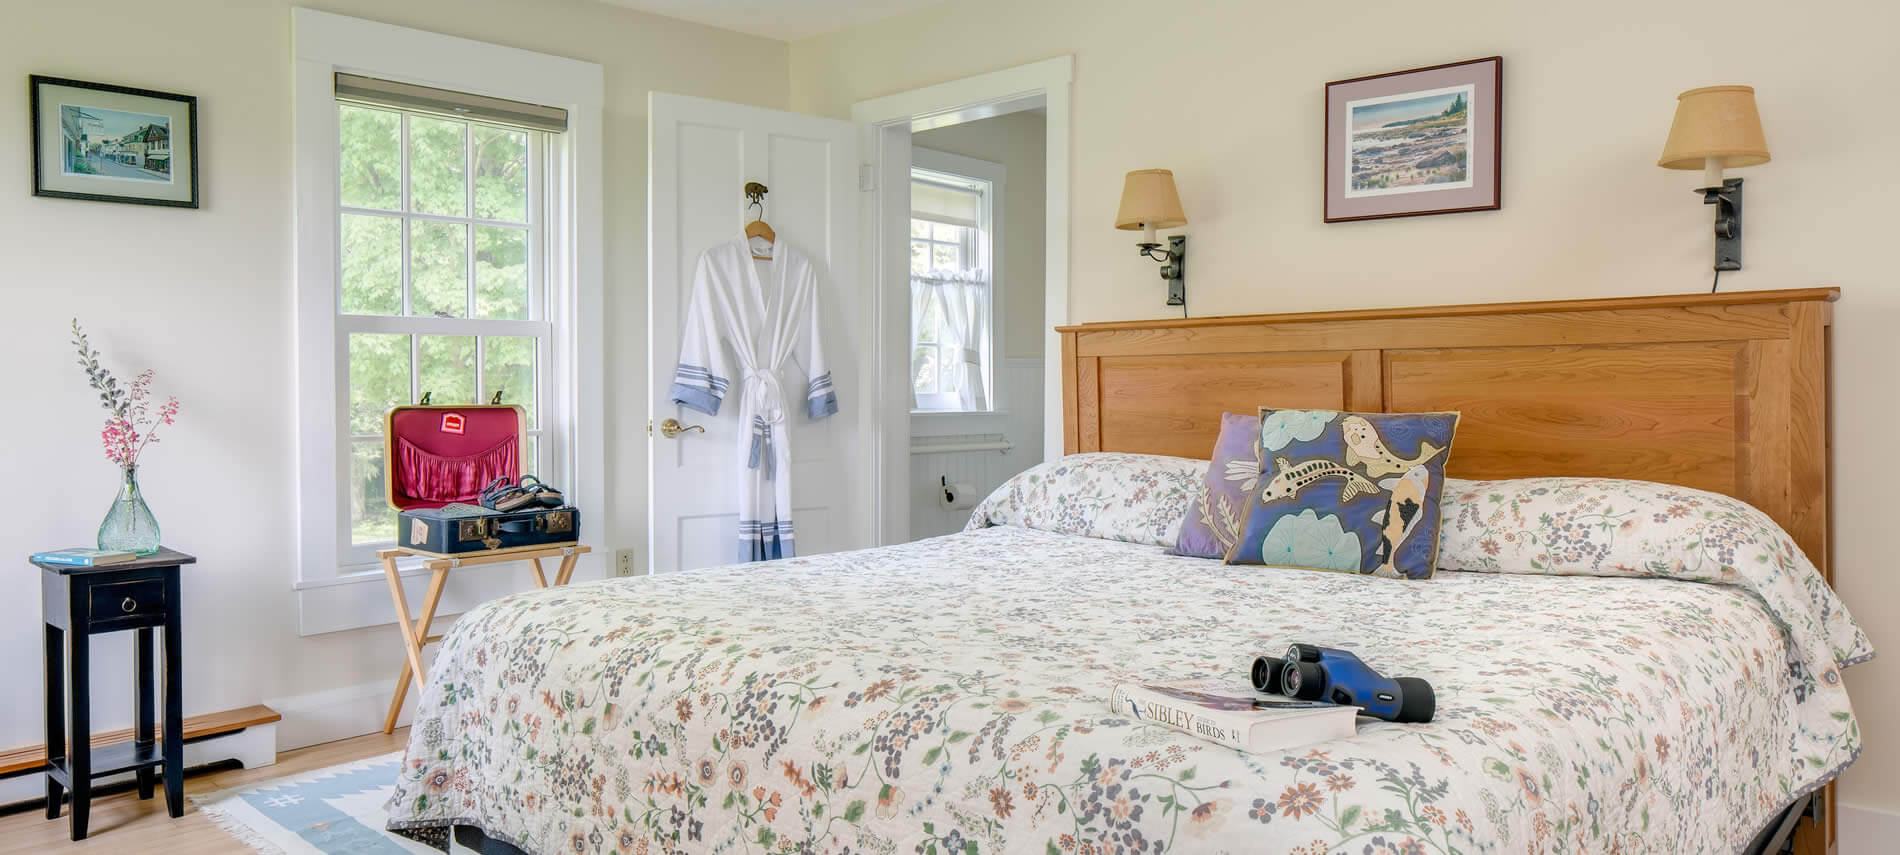 Bright beige room with trim and doors, wood floor, and two sconce lights over a wood bed with floral bedspread